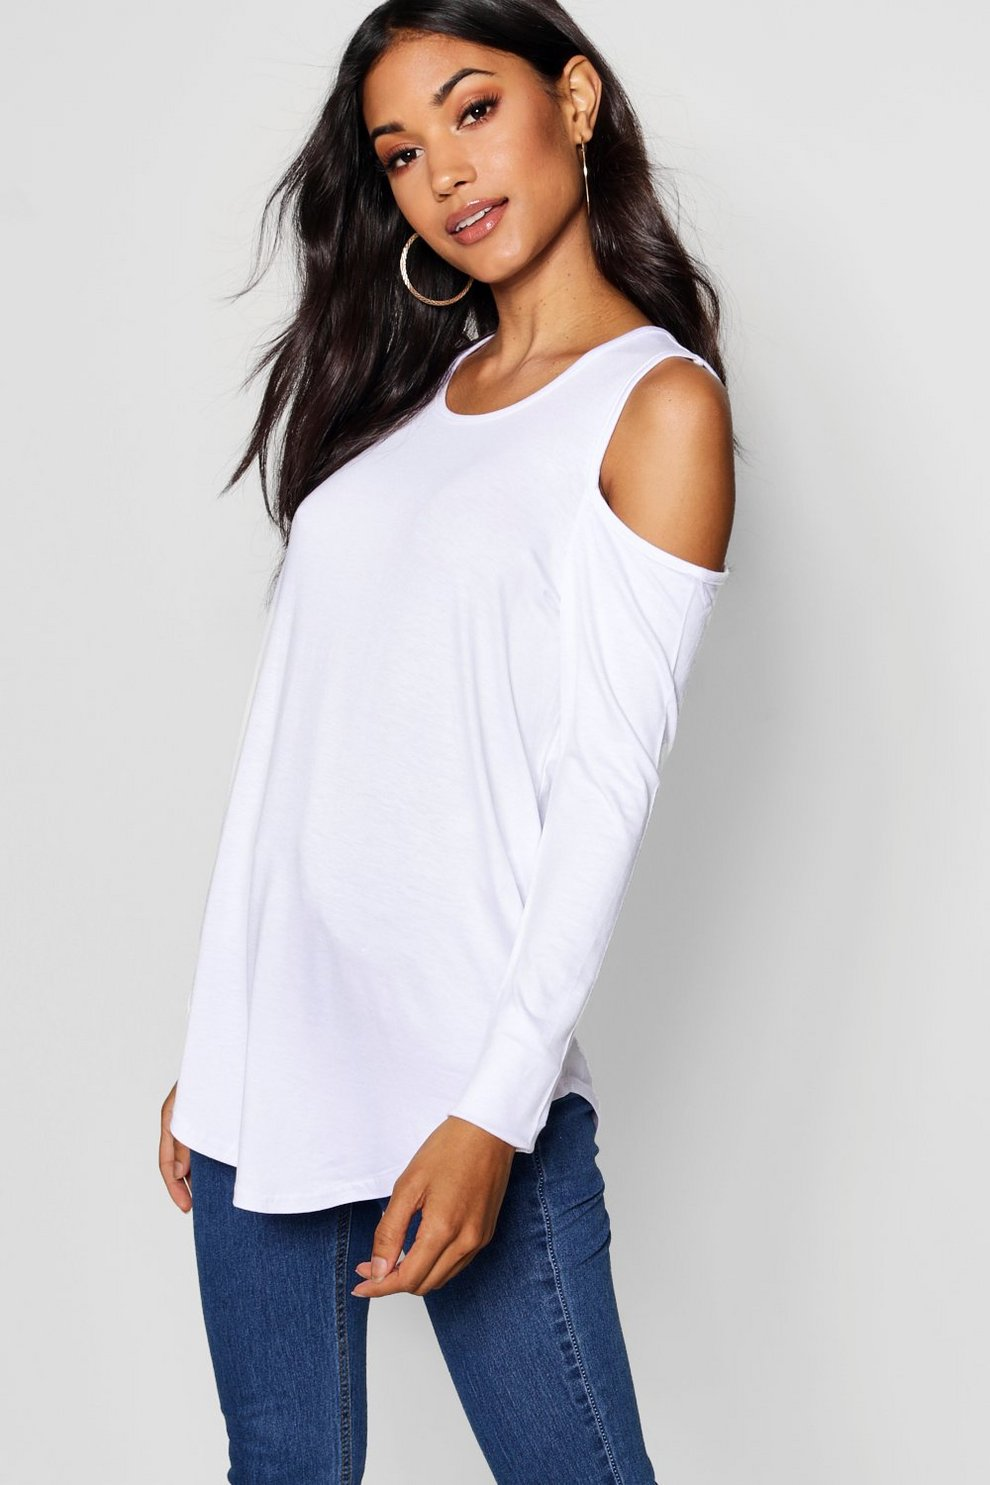 4db3bfde764 Womens White Long Sleeve Cold Shoulder Top. Hover to zoom